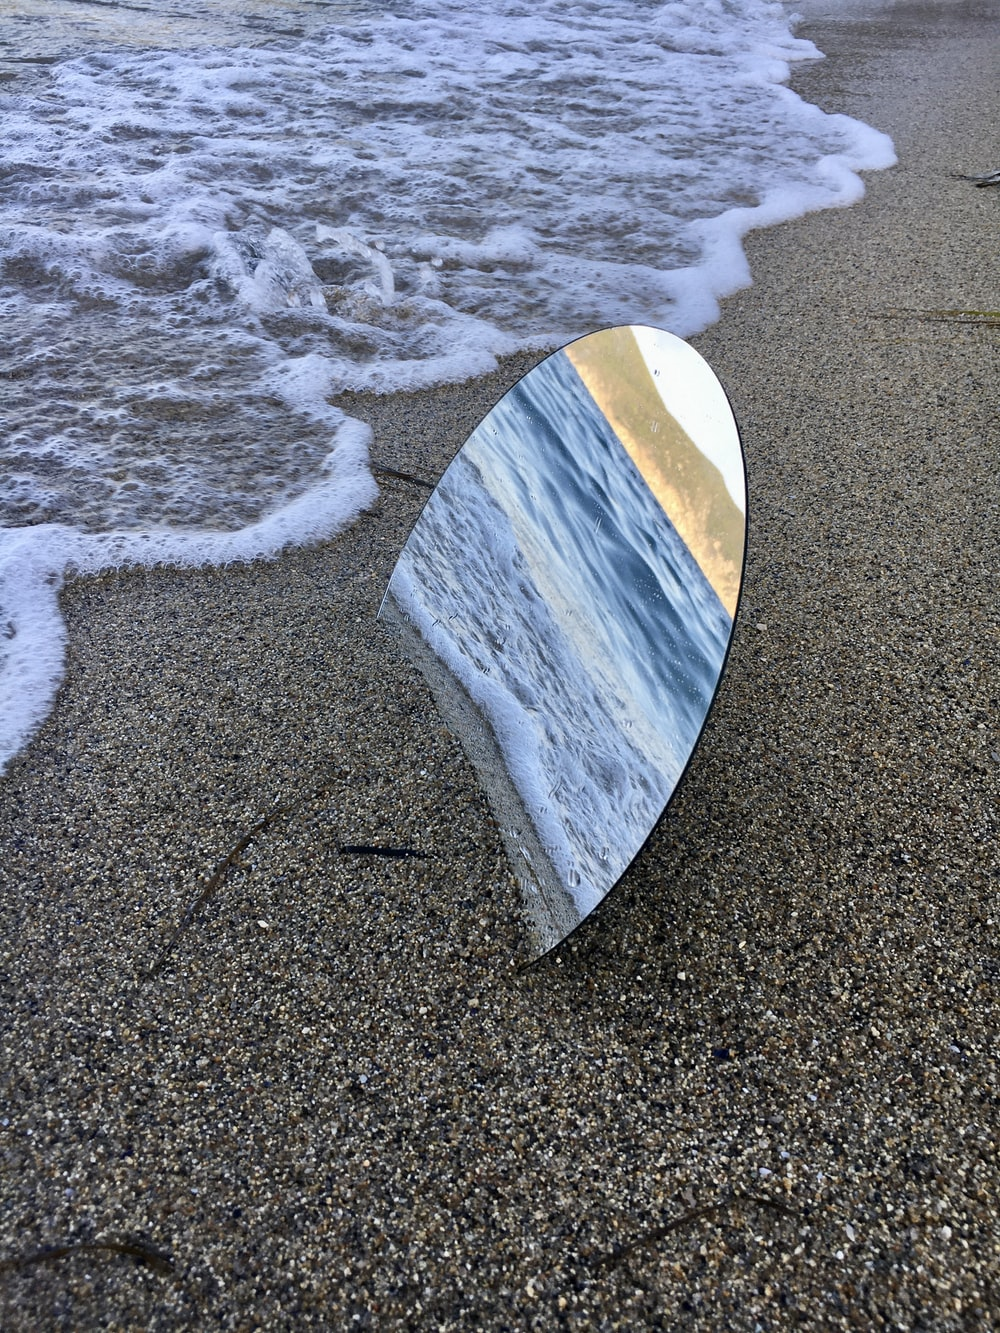 brown and white surfboard on beach shore during daytime